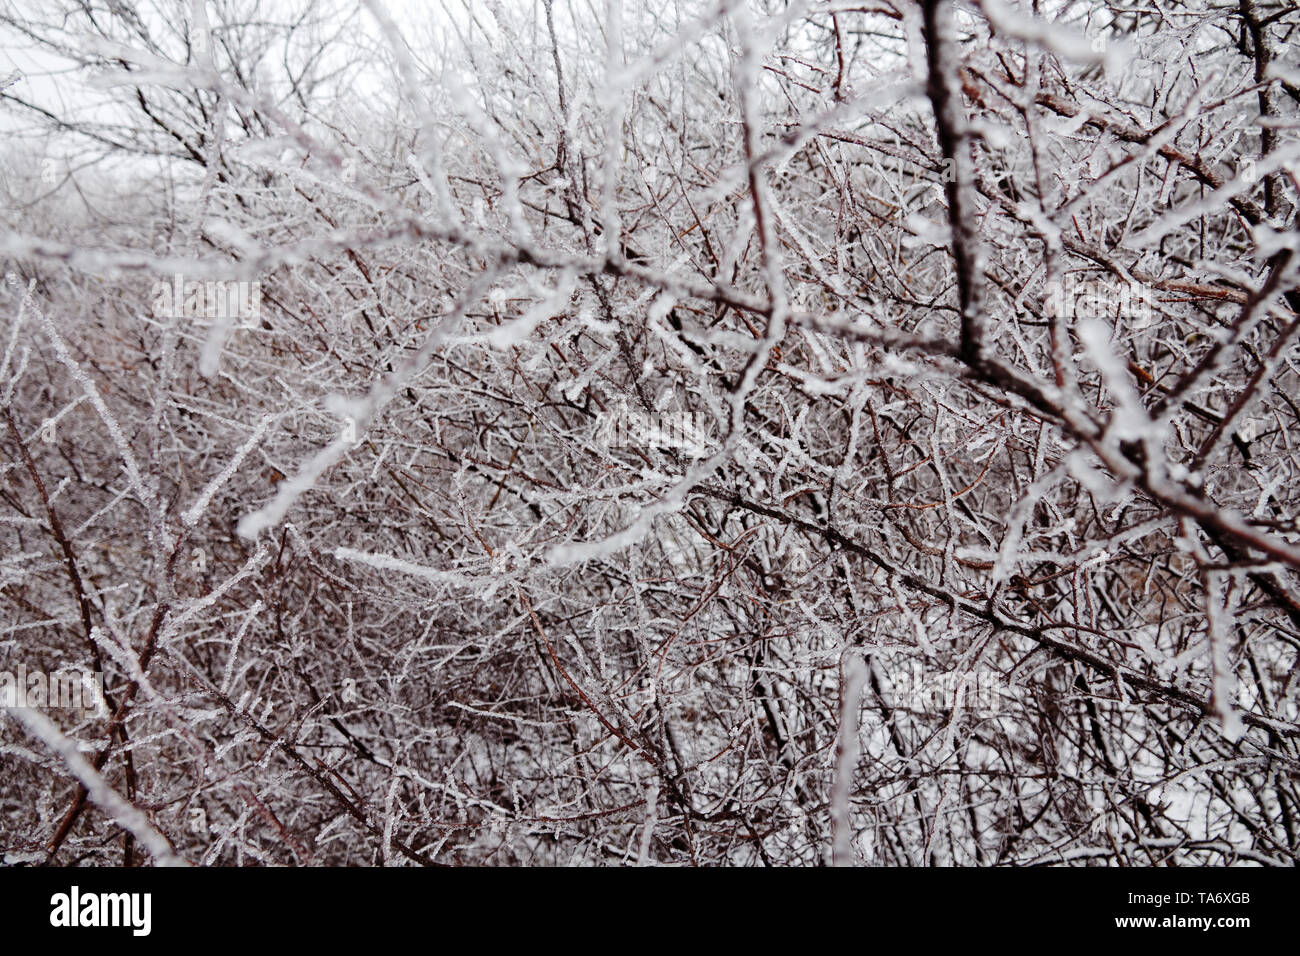 Natural disaster in form of ice rain came to southern region of Eastern European part. Beautiful full-scale glaciation all around - Stock Image